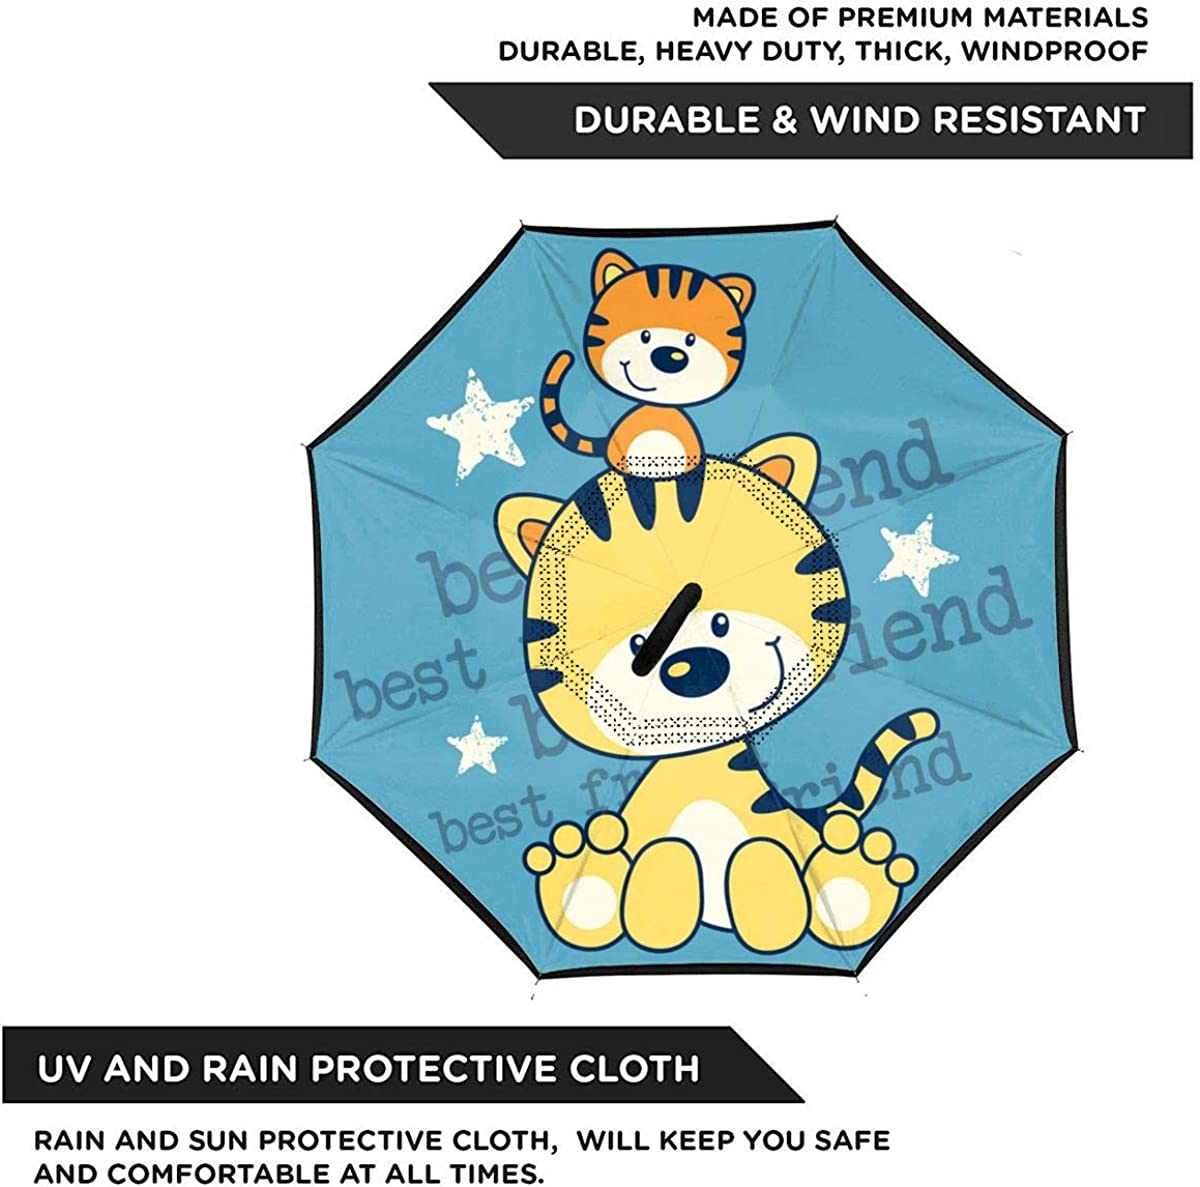 Little Kitten Best Friend Cartoon Vector Image Reverse Umbrella Double Layer Inverted Umbrellas For Car Rain Outdoor With C-Shaped Handle Customized